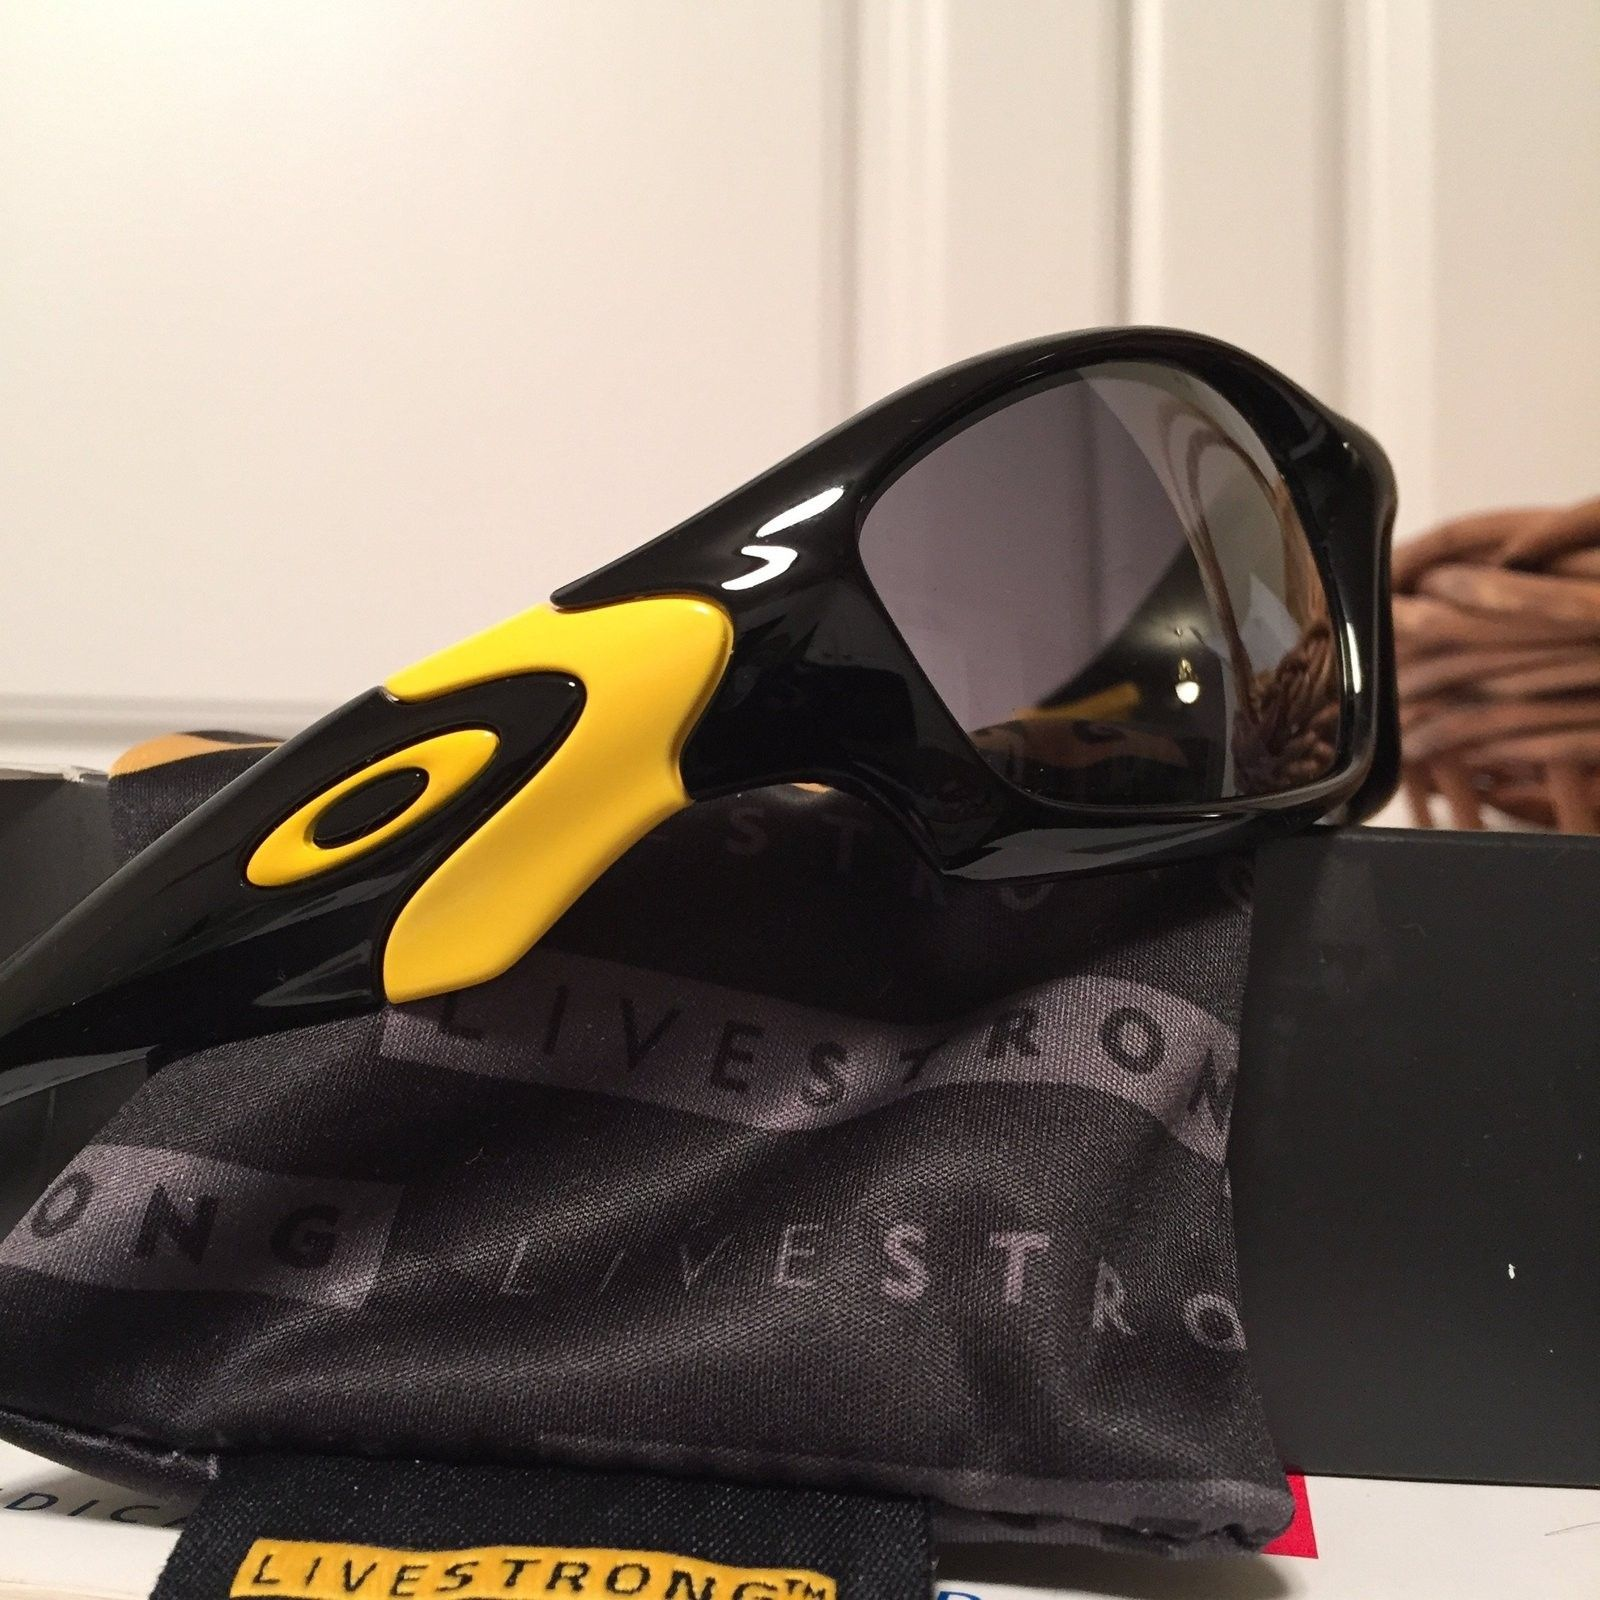 Sold Livestrong Straight Jacket II BNIB  60 shipped lowest low - image.jpg